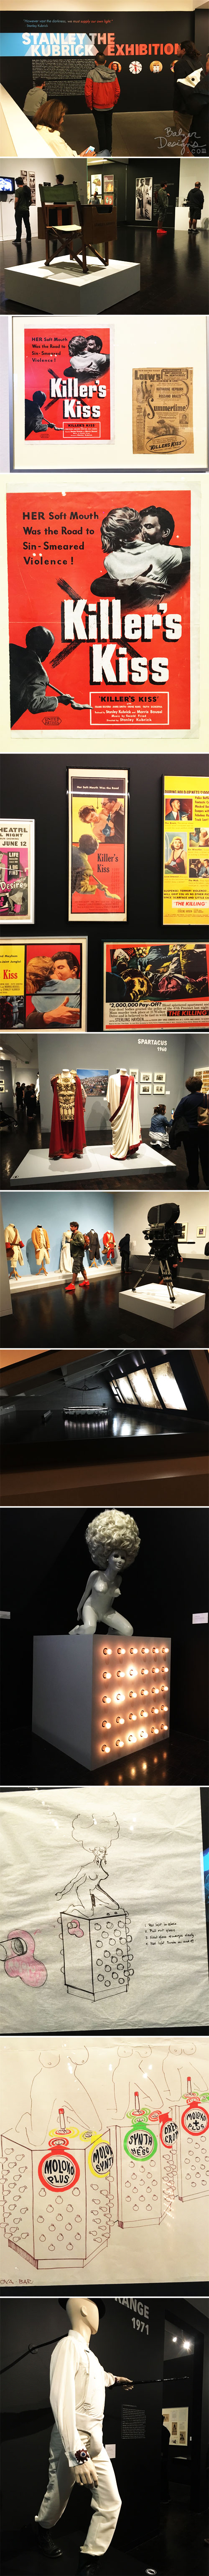 from the Balzer Designs Blog: Stanley Kubrick: The Exhibition